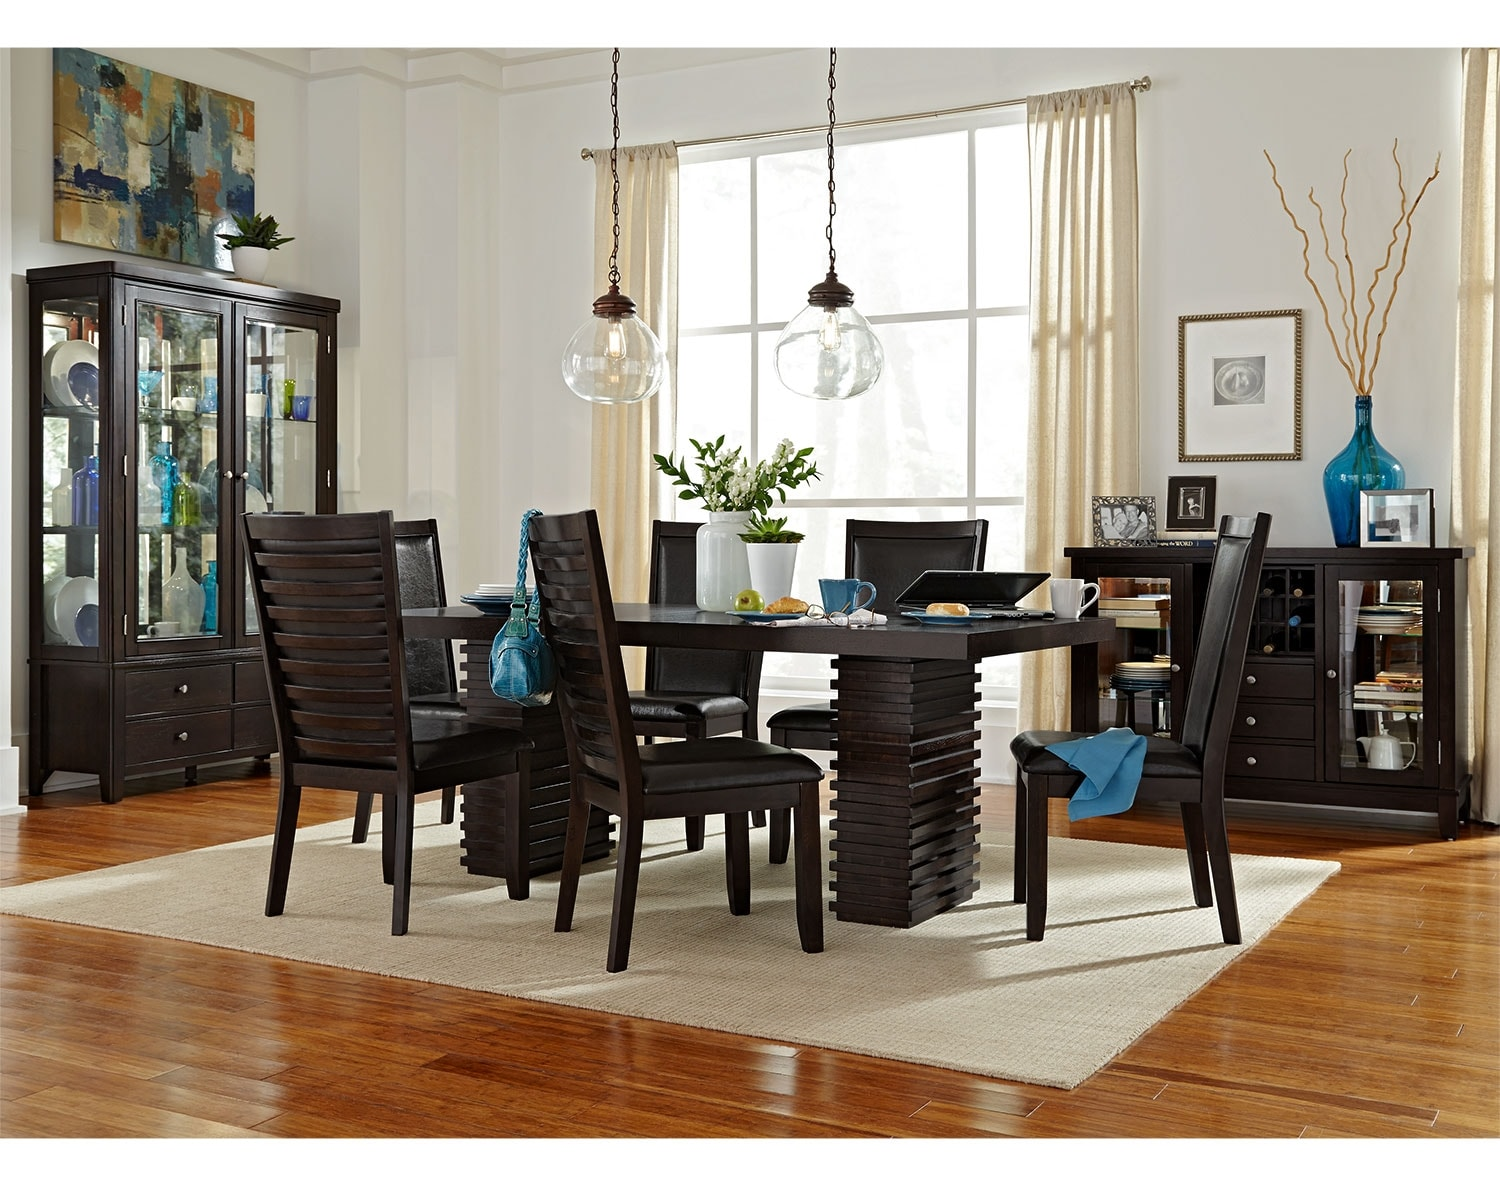 the paragon collection merlot and brown 31999 paragon dining table merlot - Dining Room Sets Value City Furniture